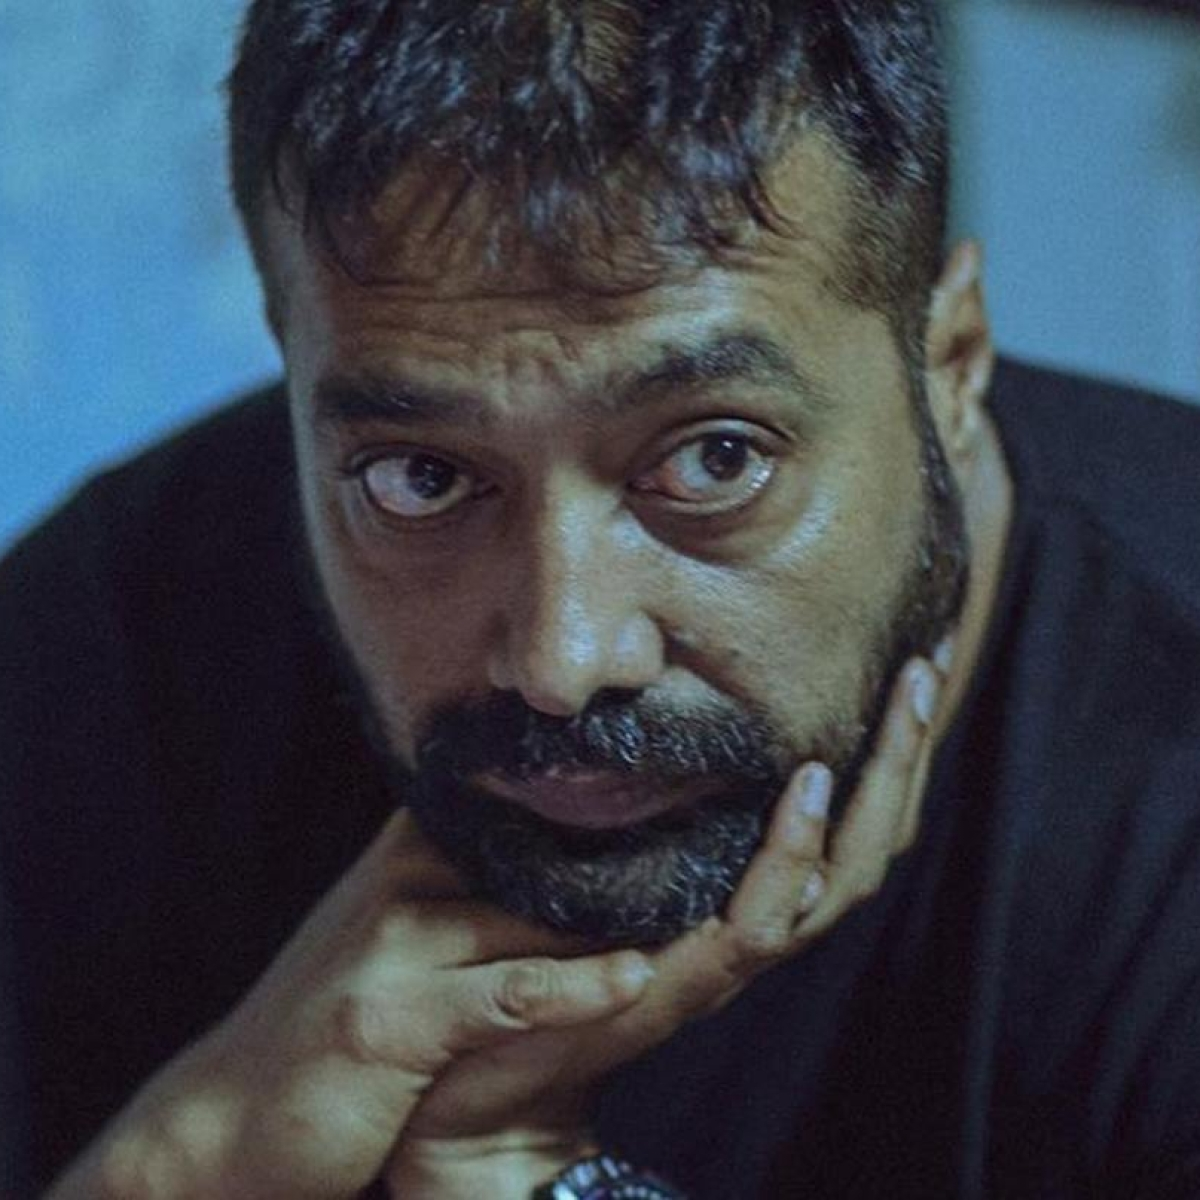 I-T officials leave Anurag Kashyap's residence after almost 11 hours; Taapsee Pannu, 'Gangs of Wasseypur' director quizzed in Pune